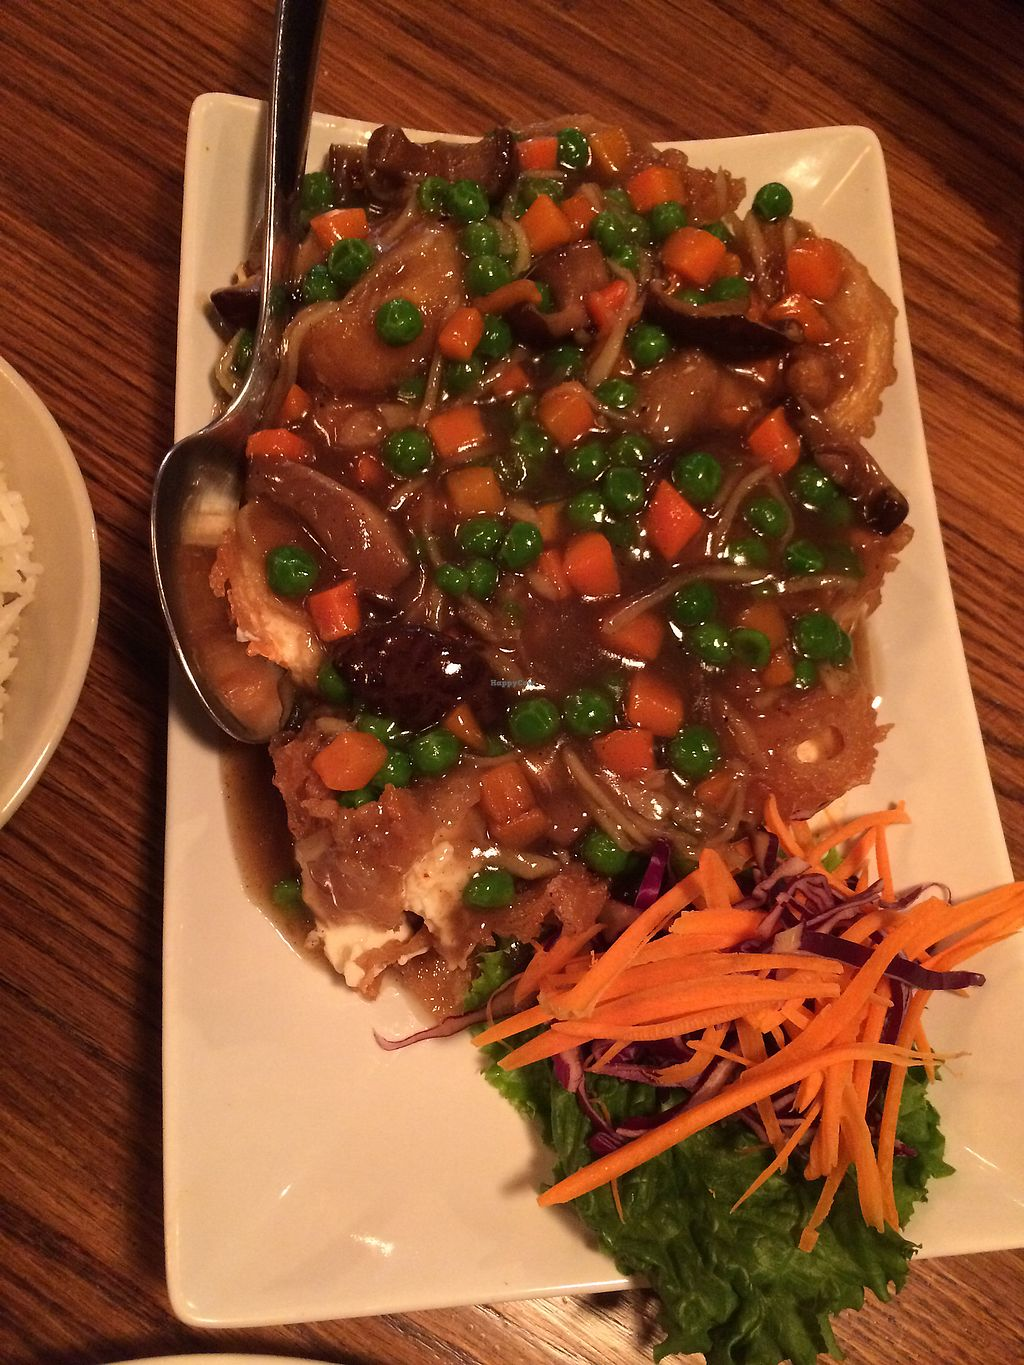 """Photo of 90 Degree Bangkok Cafe & Bar  by <a href=""""/members/profile/Arti"""">Arti</a> <br/>chef special soft tofu - yumm! <br/> December 31, 2017  - <a href='/contact/abuse/image/108287/341261'>Report</a>"""